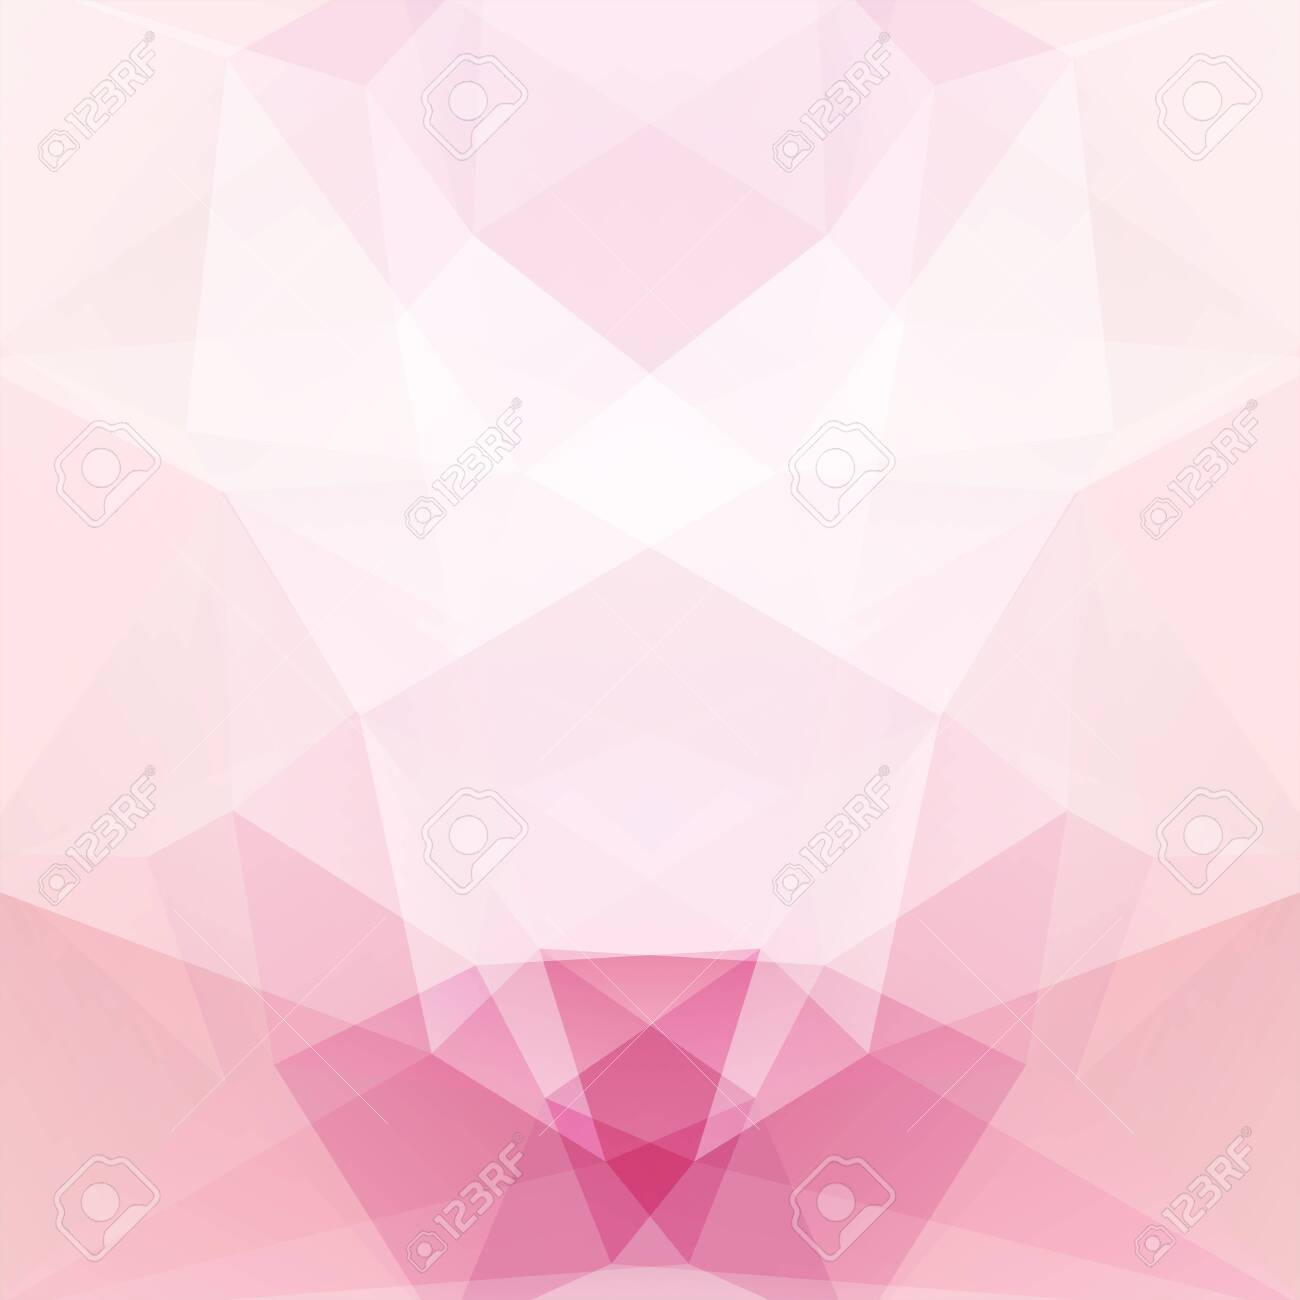 Background made of pastel pink, white triangles. Square composition with geometric shapes. - 120625535